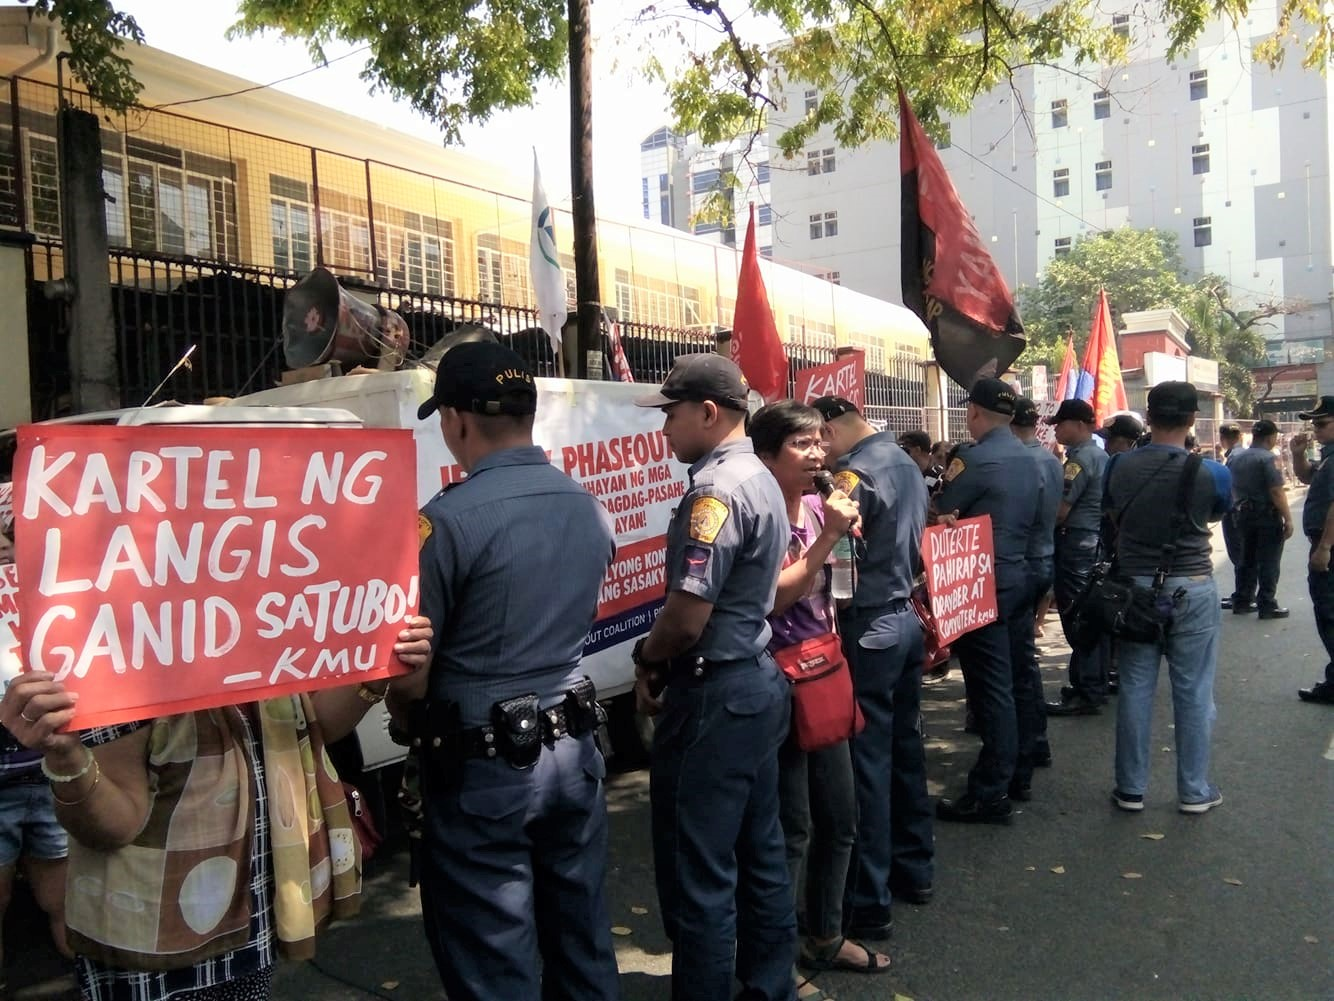 QCPD placed around 20-30 police on full alert during the transport strike protest in Aurora Blvd, Cubao, Quezon City. Photo by Abigail Abigan/Rappler